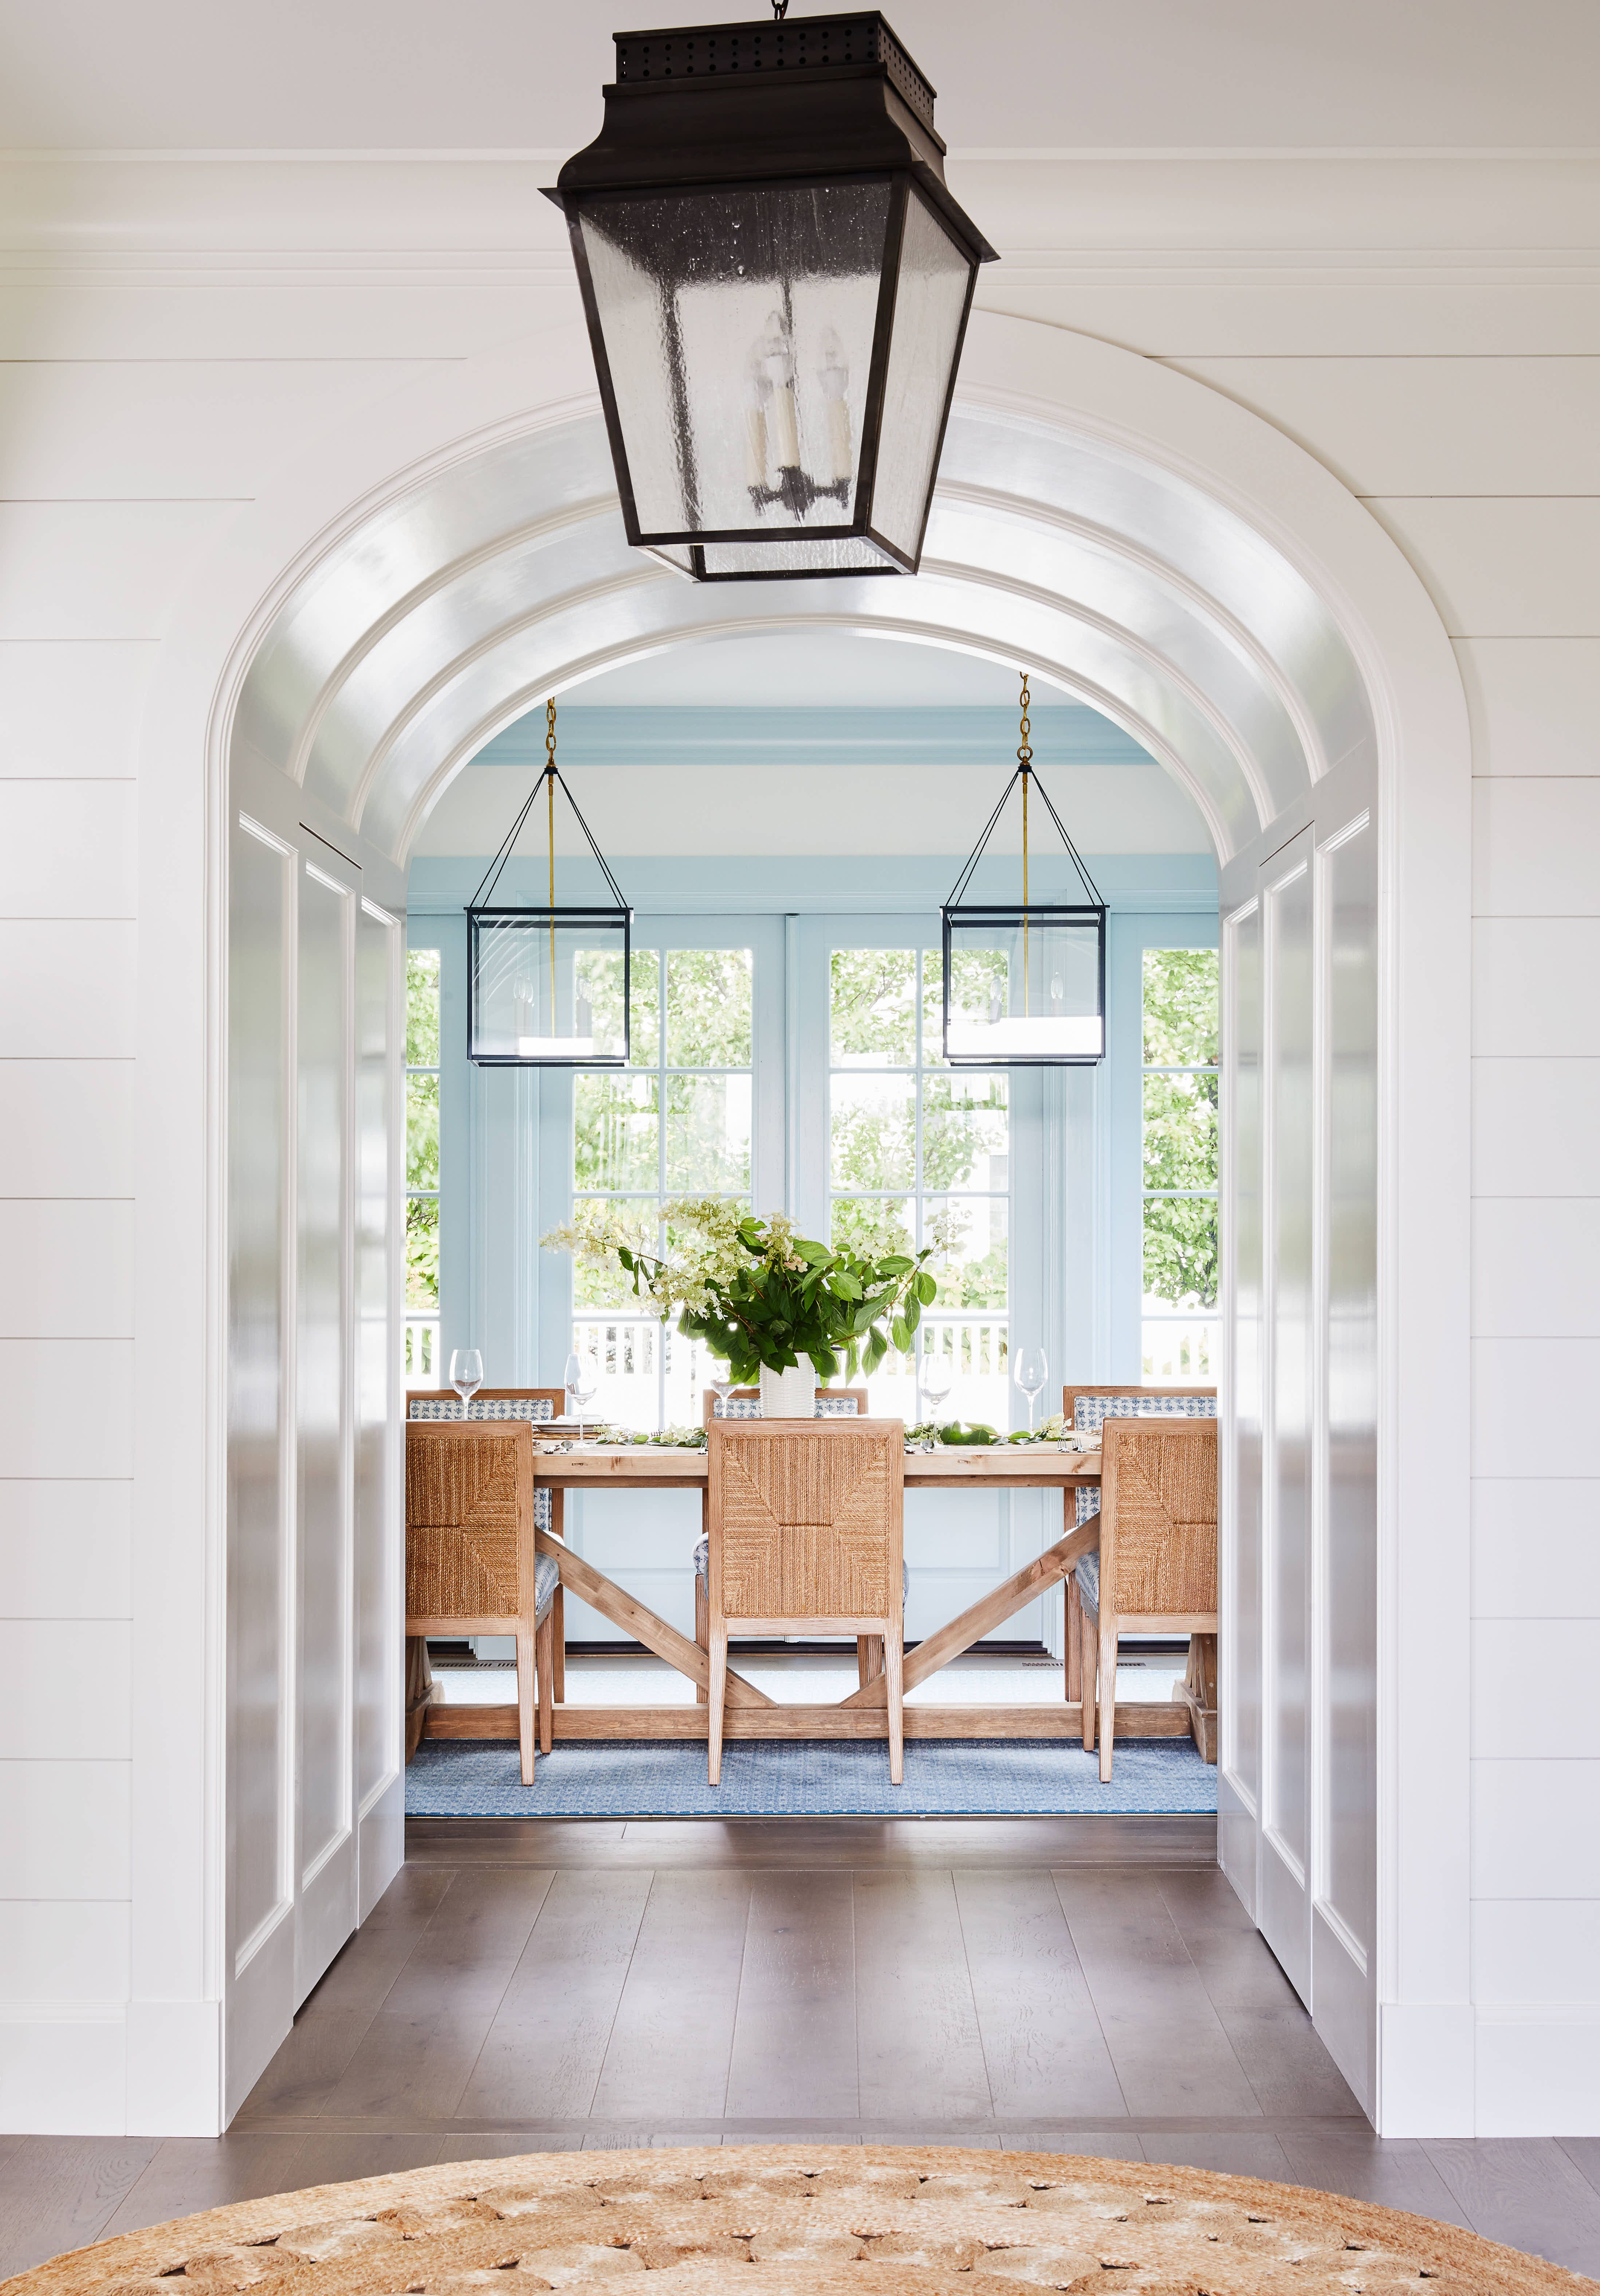 This Maine Vacation Home Puts a Fresh Spin on Seaside Hues